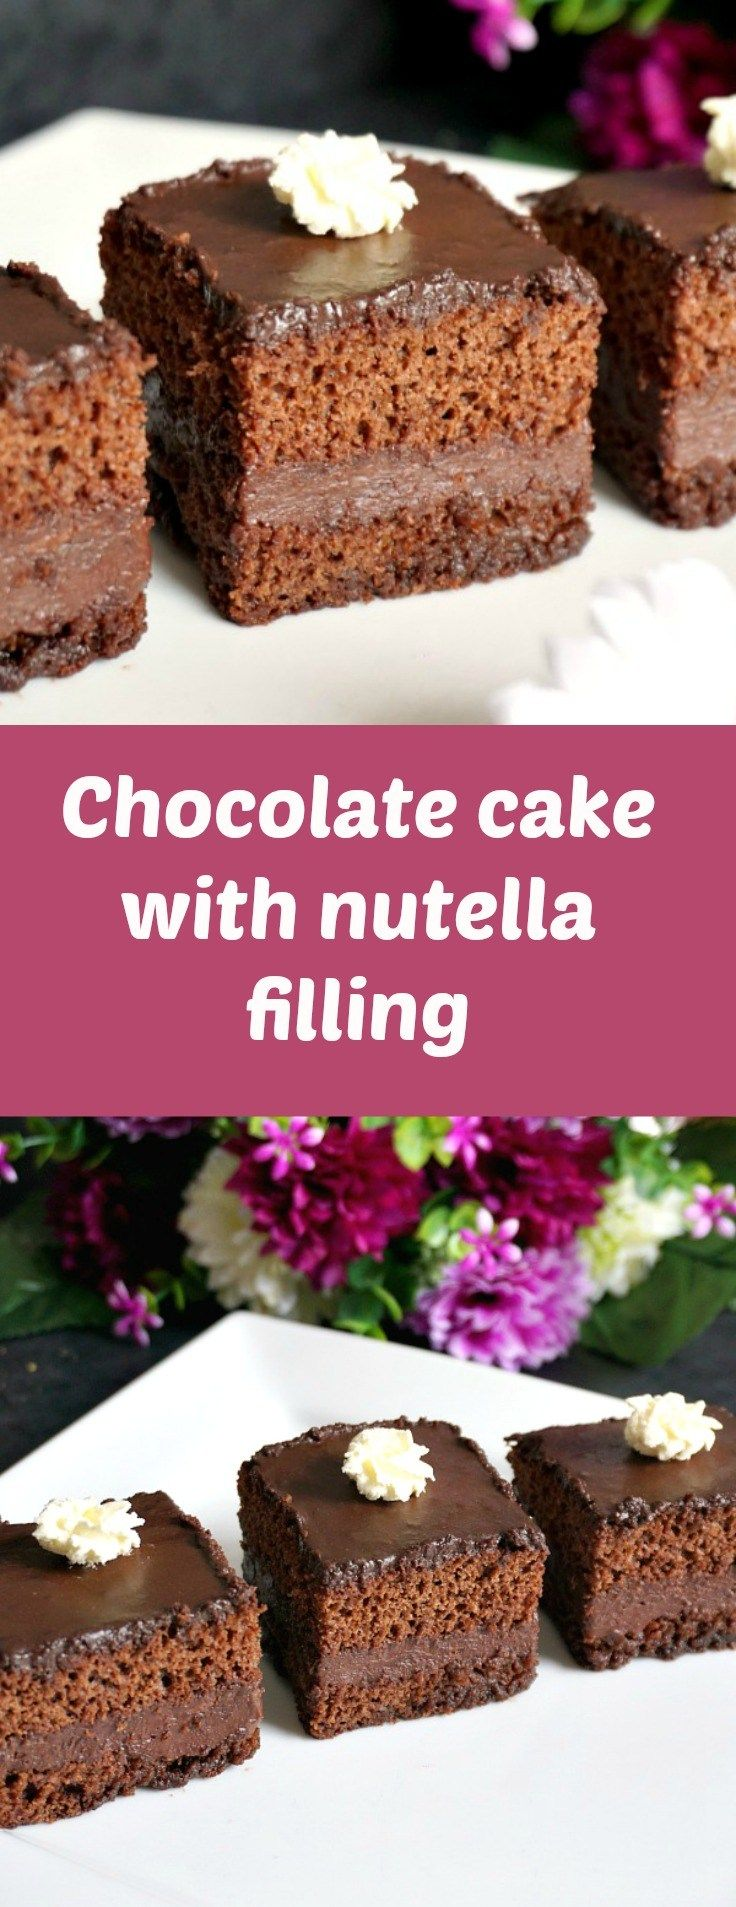 Chocolate cake with nutella filling, chocolate ganache glaze and whipped cream, or the Romanian Amandine, a fabulous dessert that tastes like heaven.